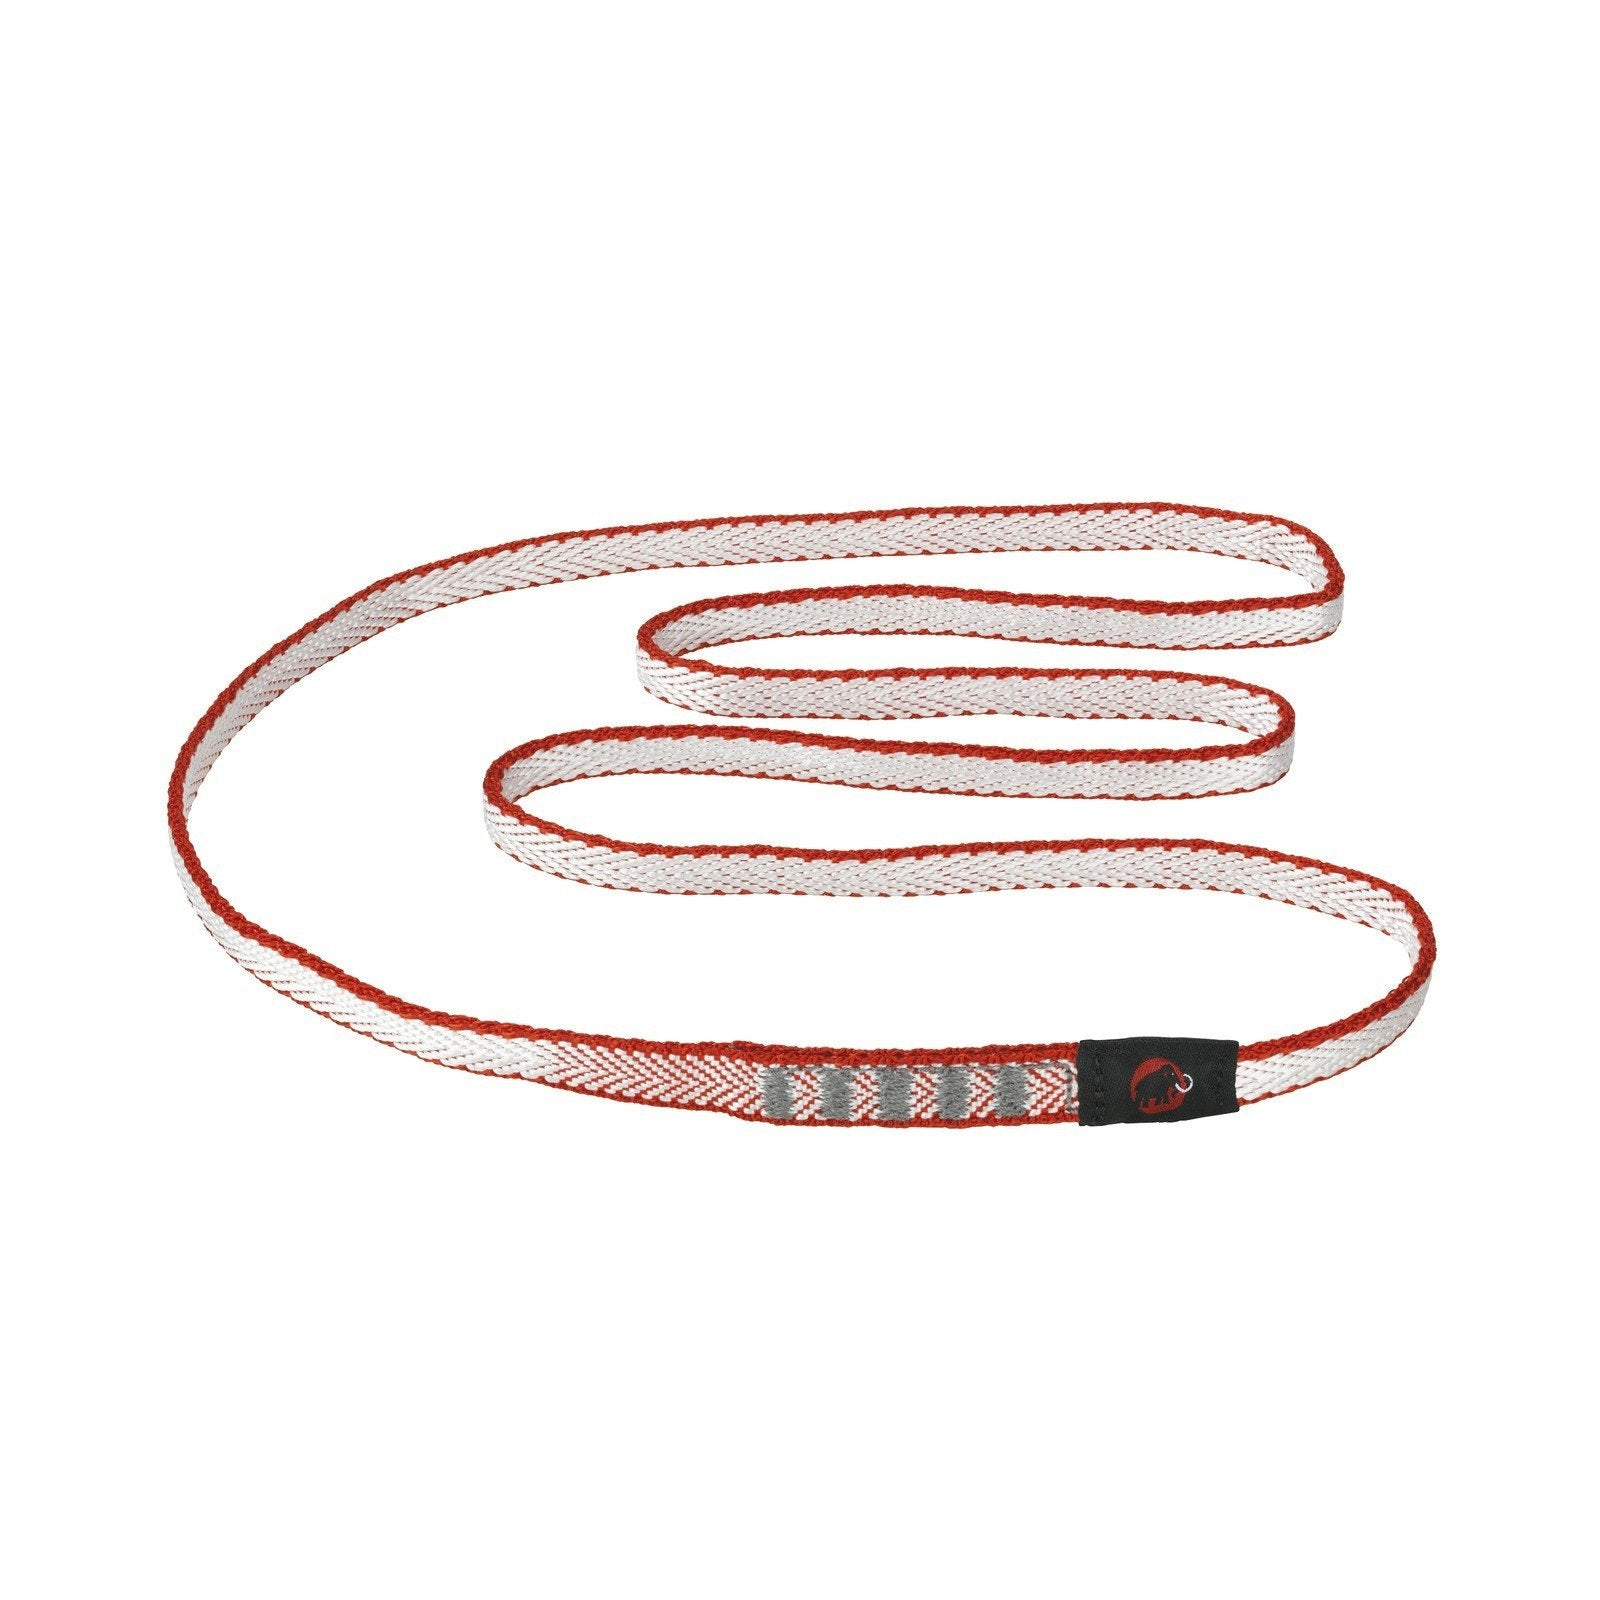 Mammut Contact Dyneema climbing sling 8mm x 60cm, in red colour